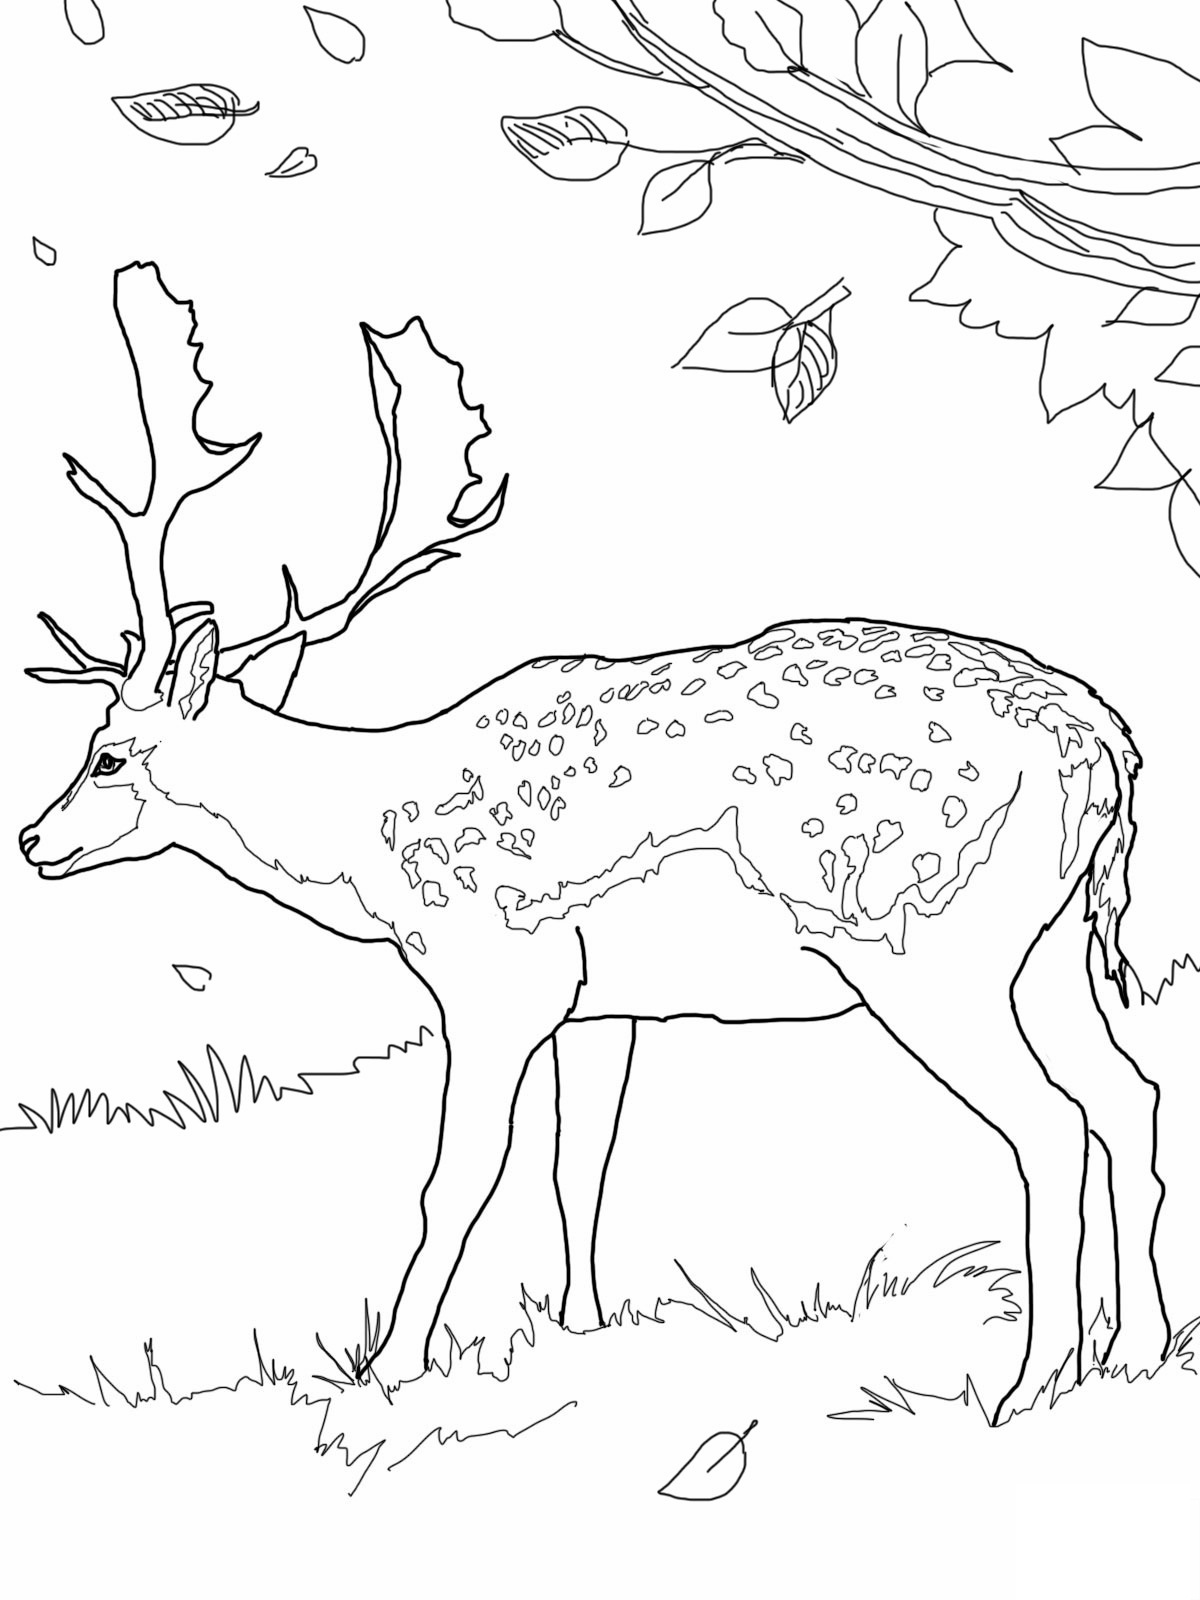 Free coloring page deer - Deer Printable Coloring Pages